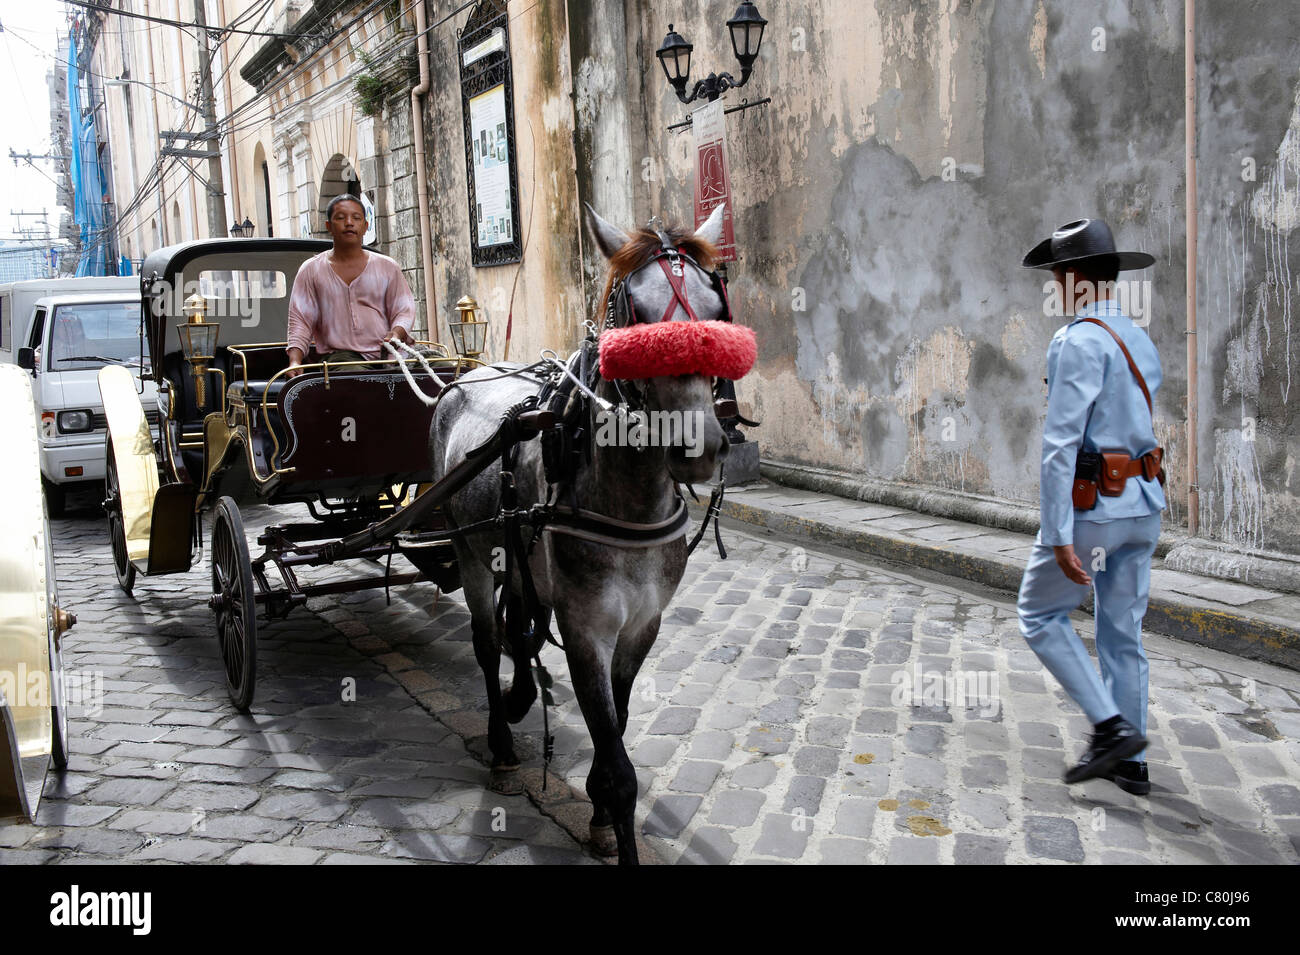 Philippines, Manila, carriage in the old town - Stock Image